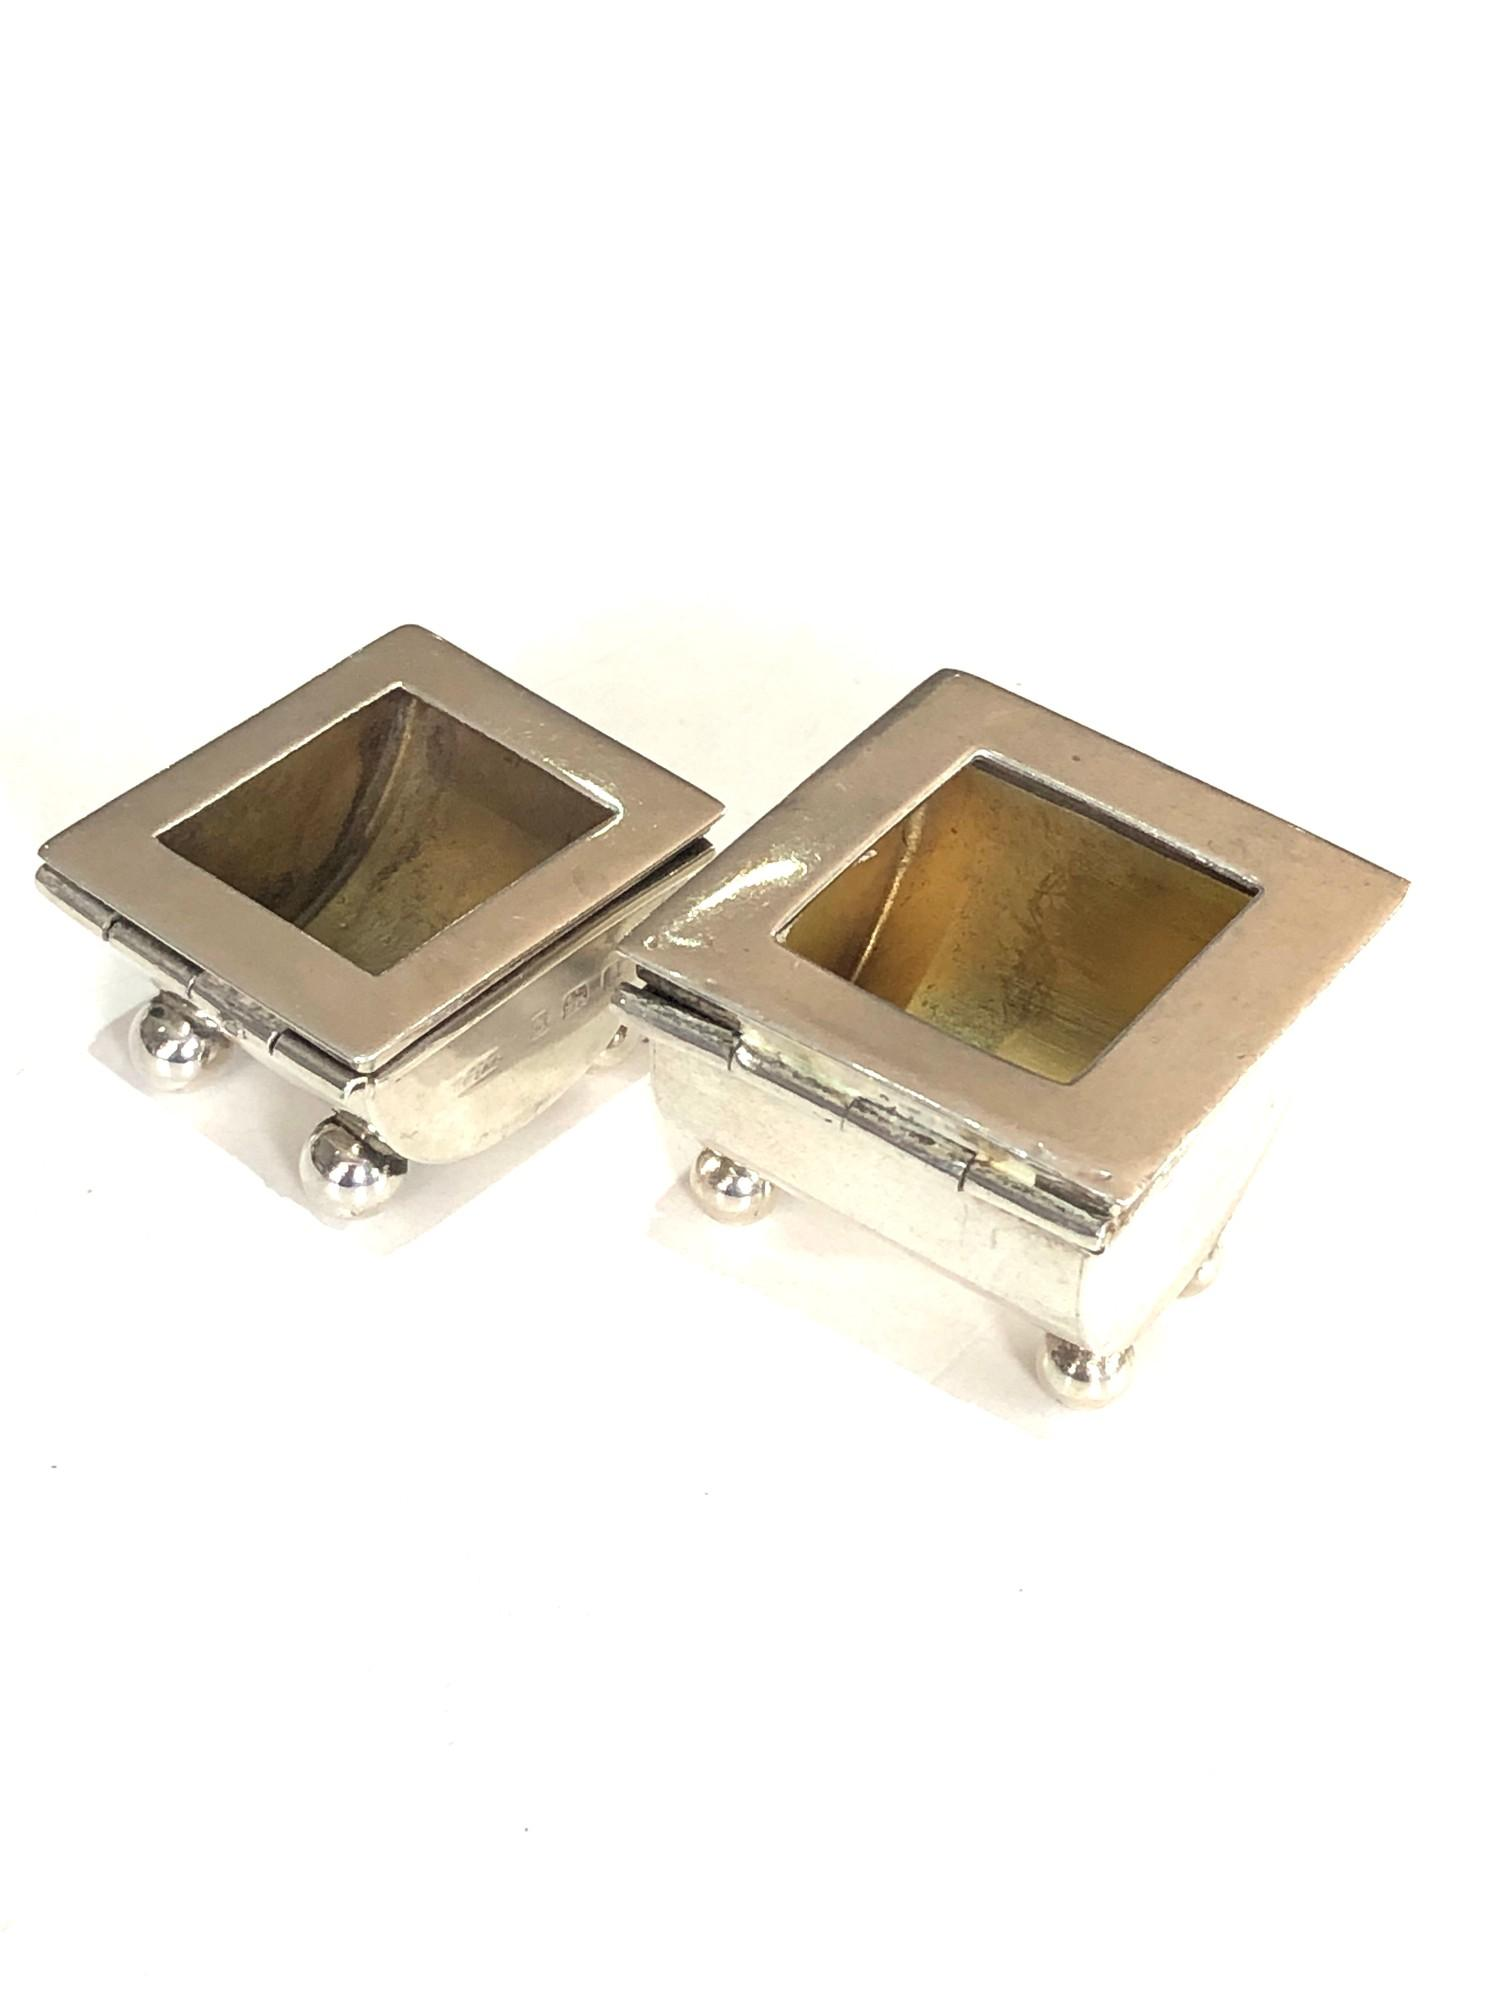 2 antique Silver Stamp Cases hinged lids both with Birmingham silver hallmarks please see images for - Image 3 of 5